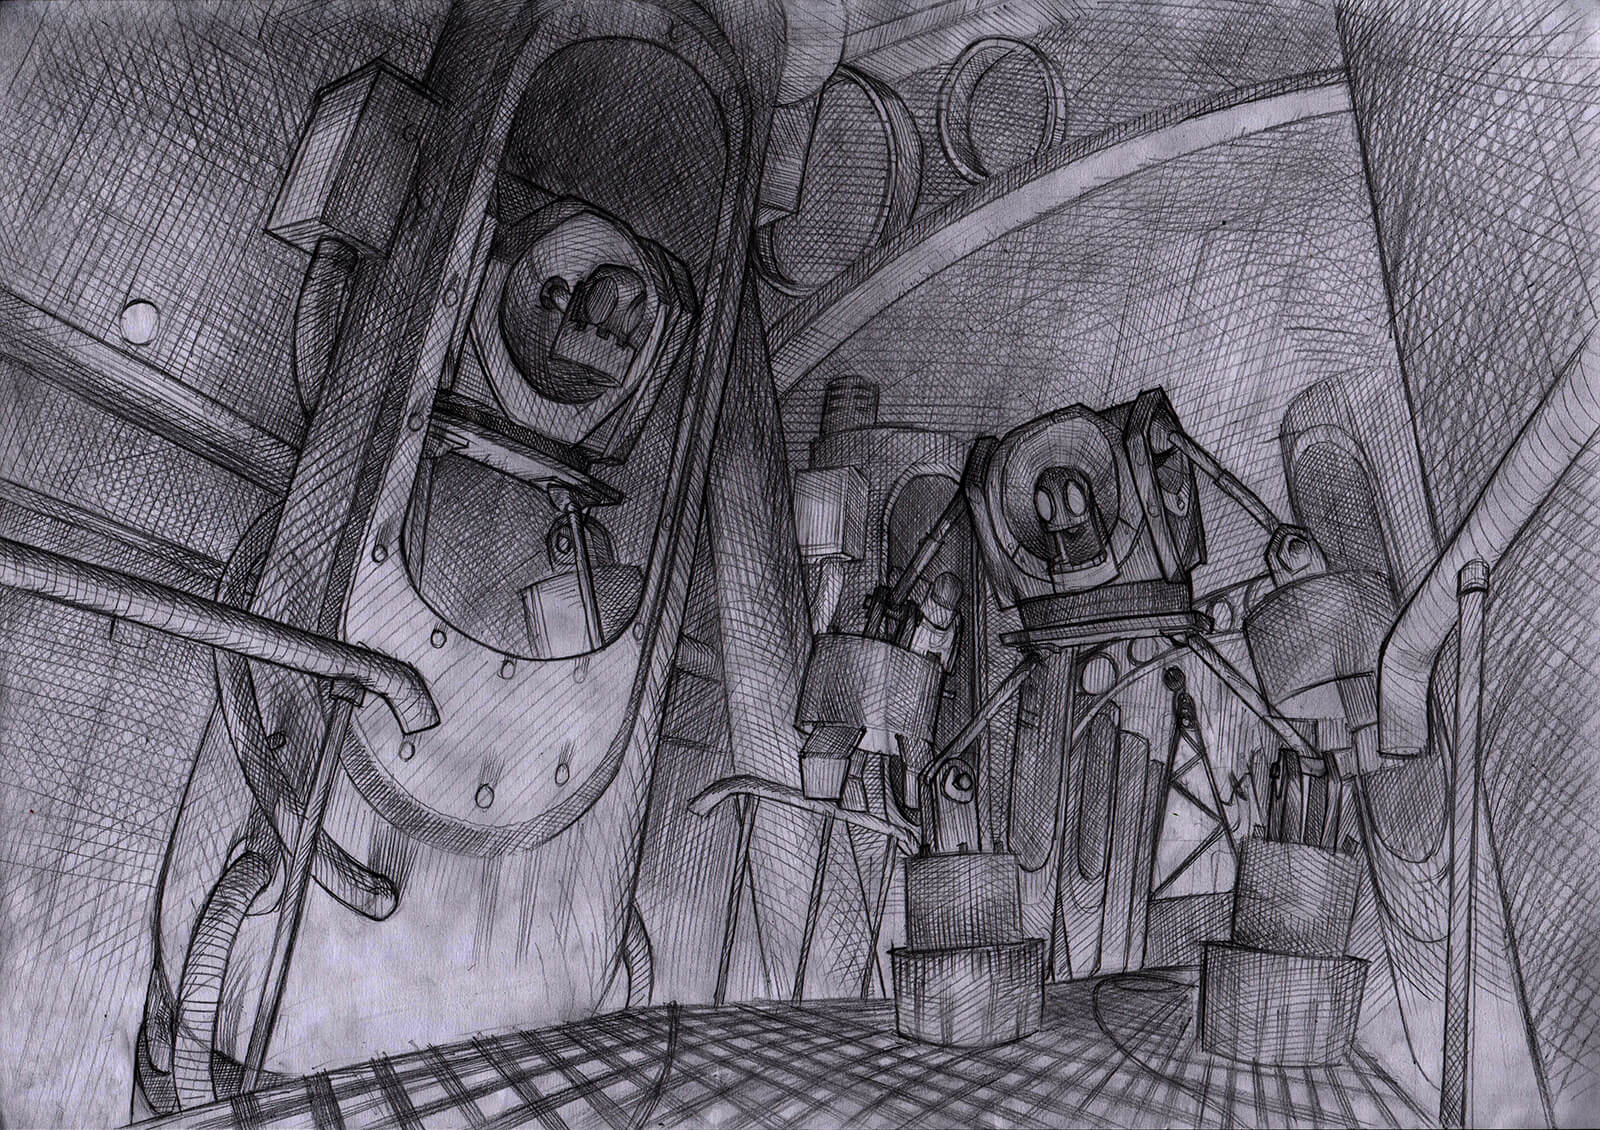 Black-and-white concept sketch for the film Core, depicting ominous metallic robots in a corridor